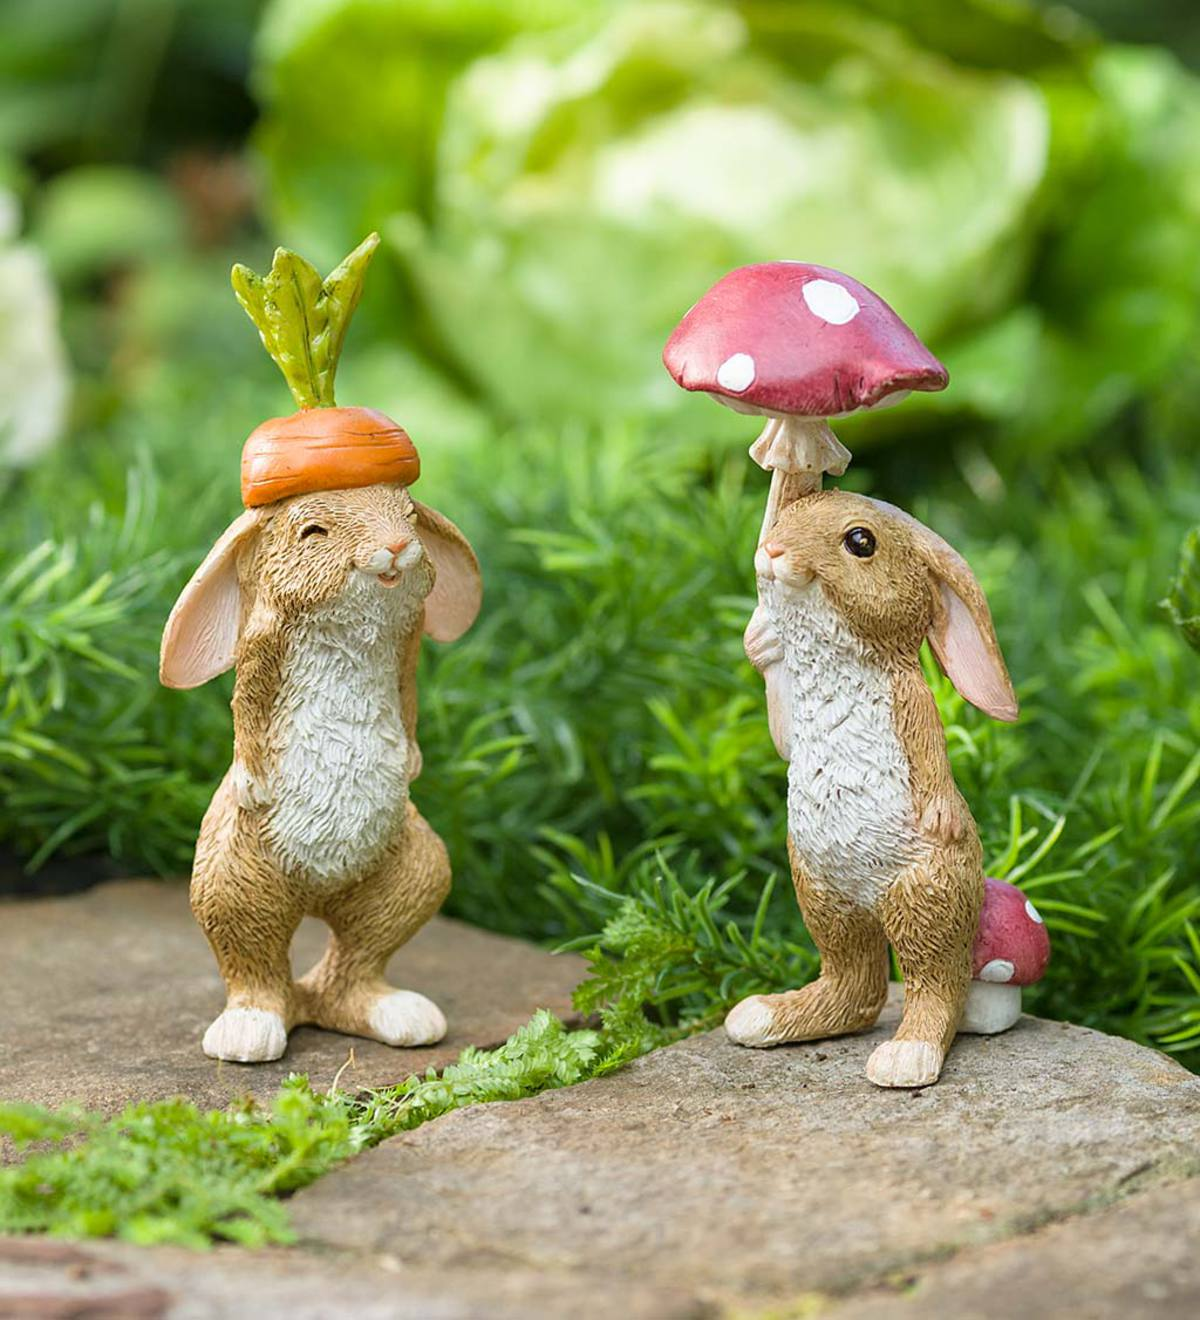 Veggie Rabbit Garden Figures, Set of 2